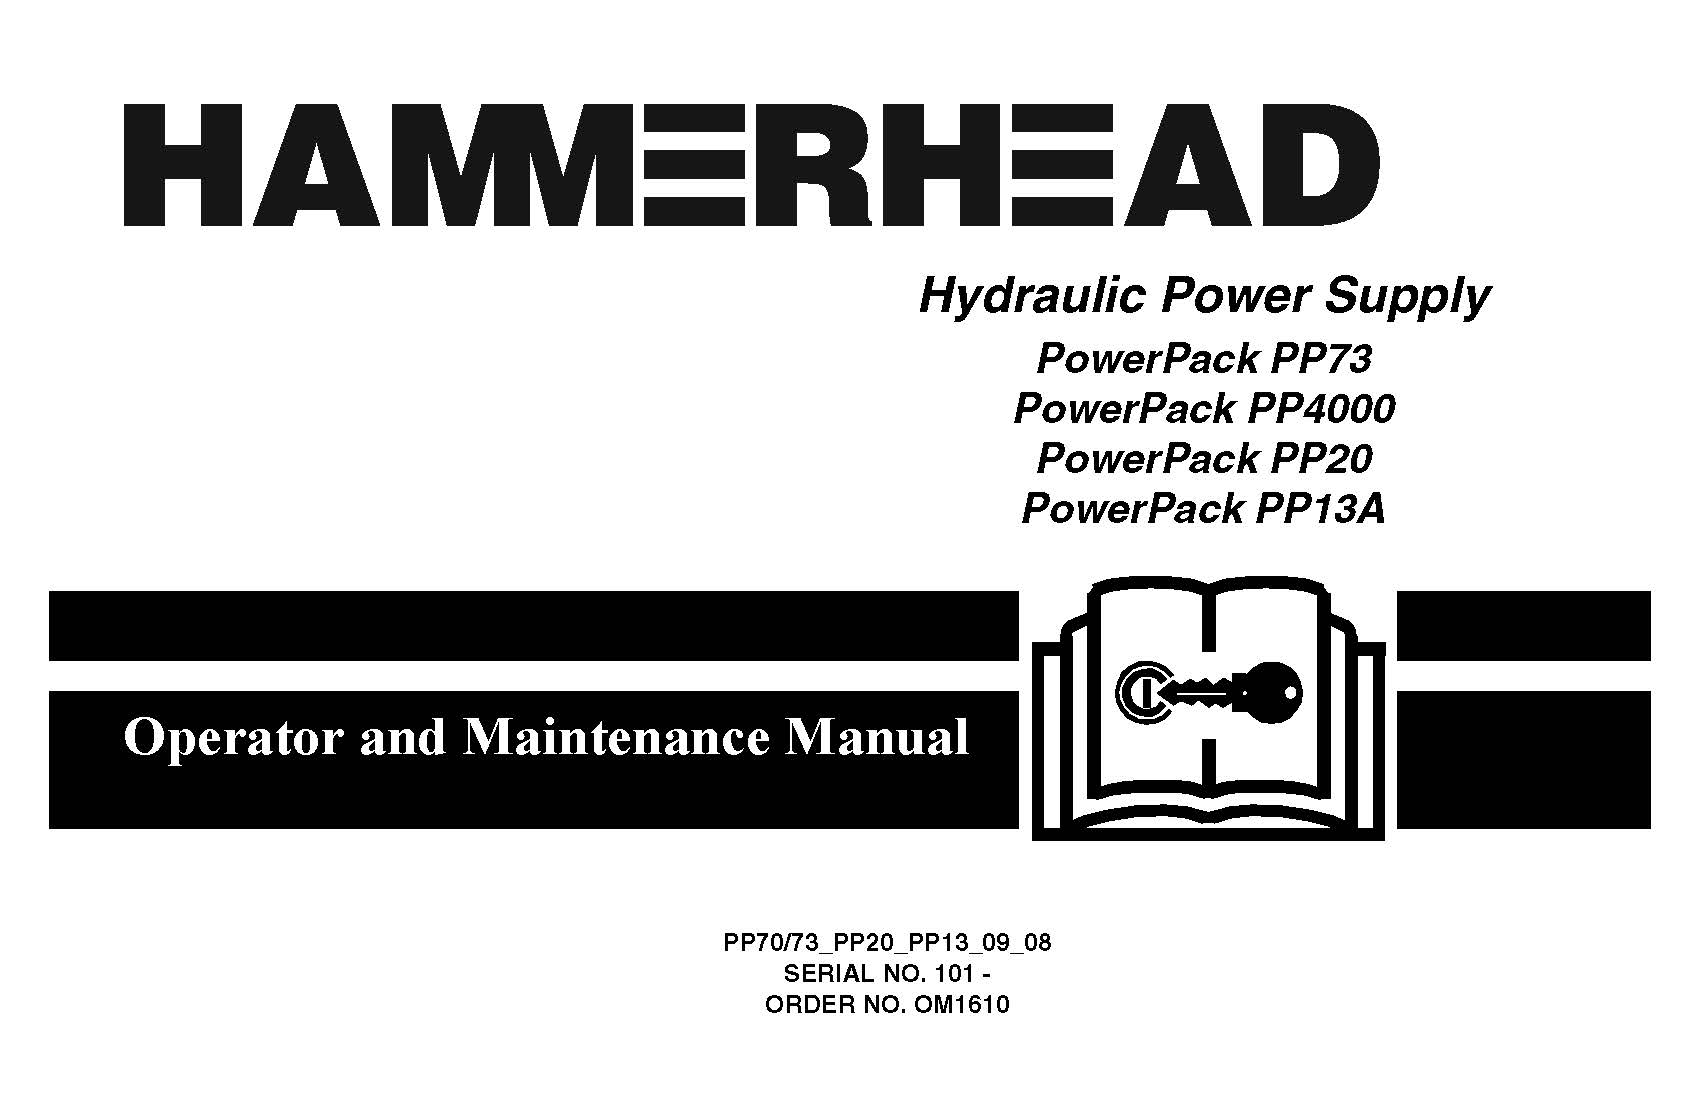 Power_Pack_Ops_Manual_03-2010_en (3)_Page_001.jpg